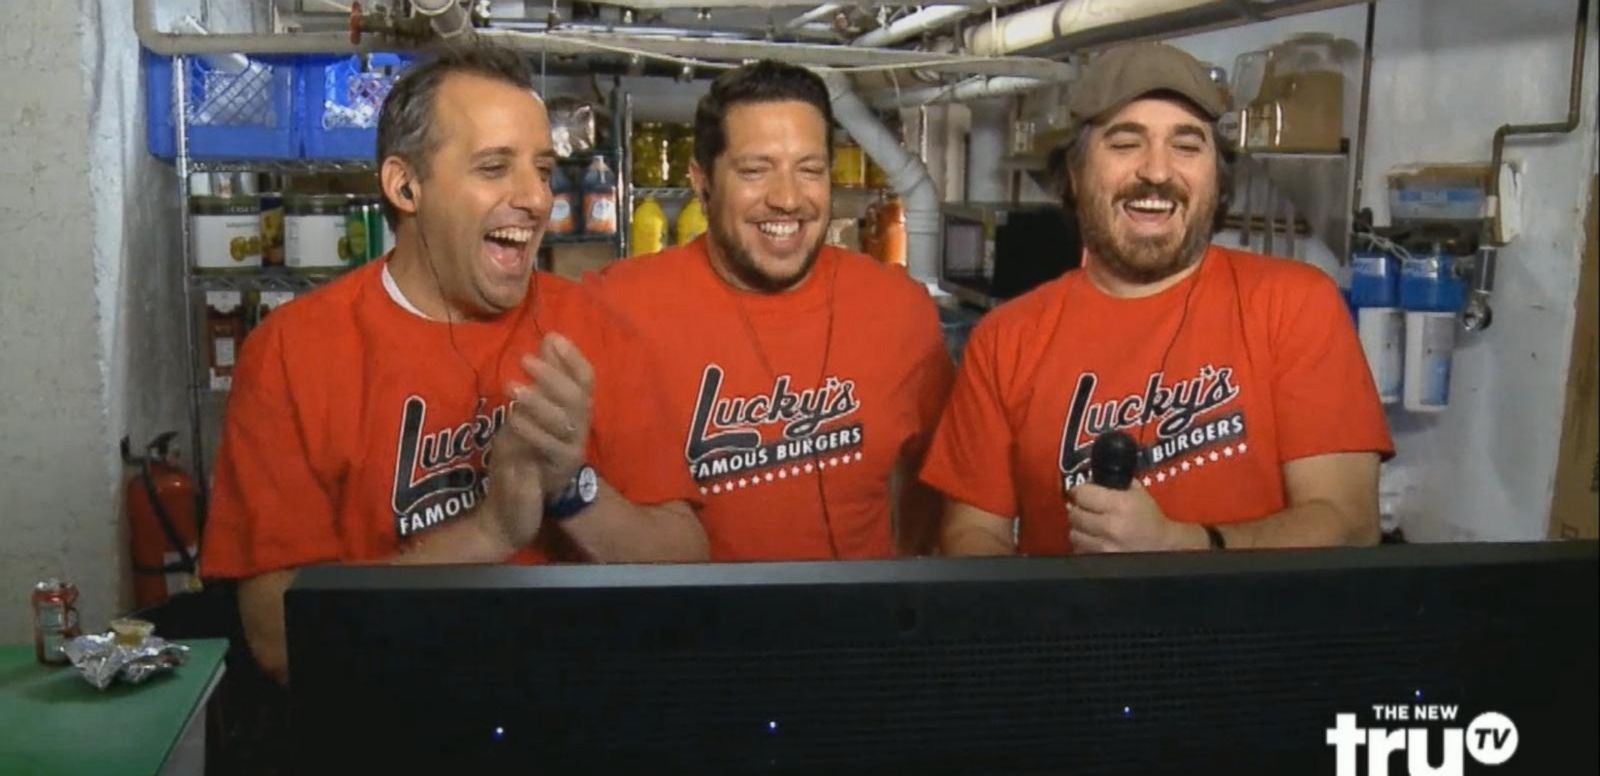 VIDEO: 4 Pals Turn Lifelong Pranking Obsession Into Cult TV Series